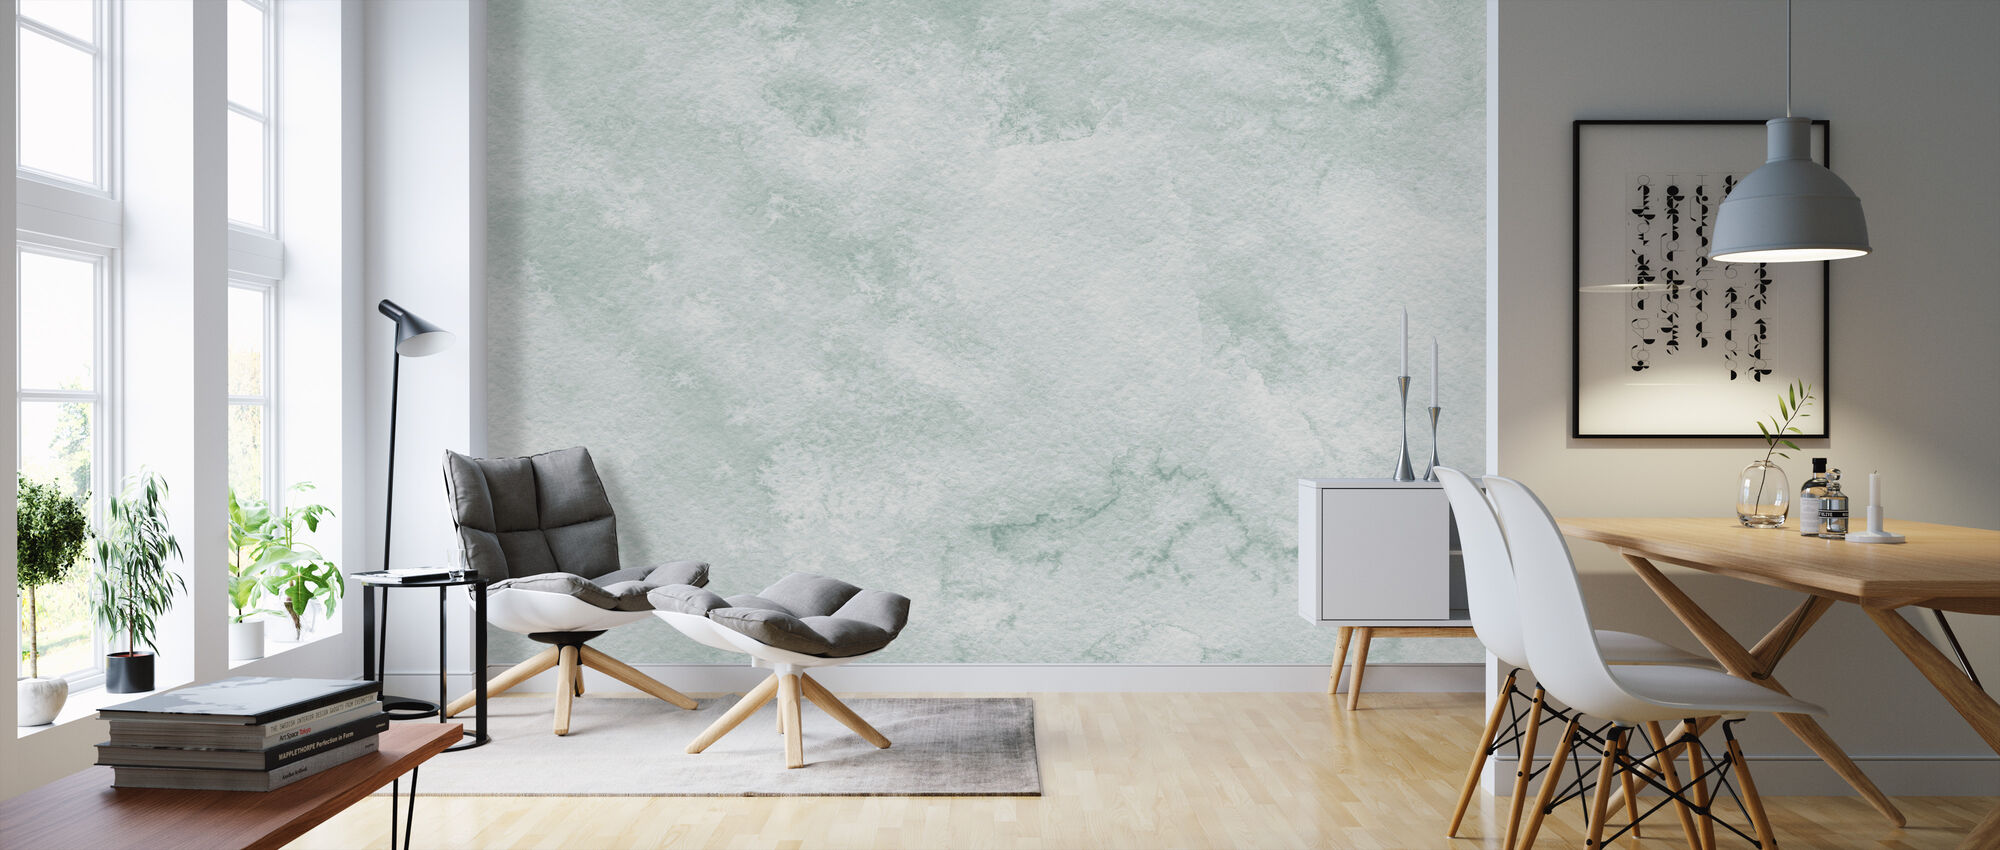 Watercolor Minimalism III - Wallpaper - Living Room